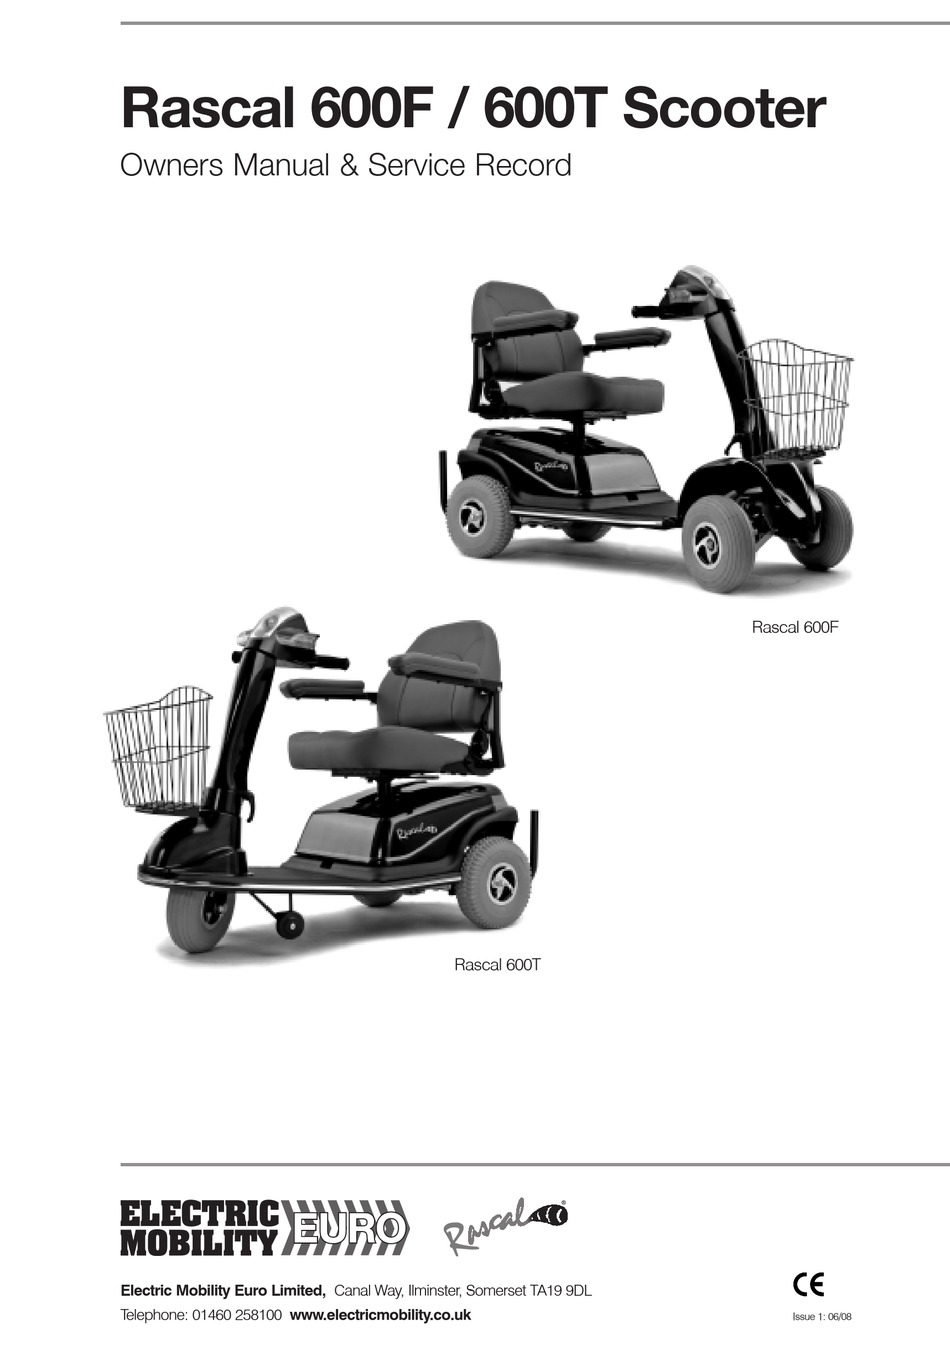 ELECTRIC MOBILITY RASCAL 600F OWNERS MANUAL & SERVICE